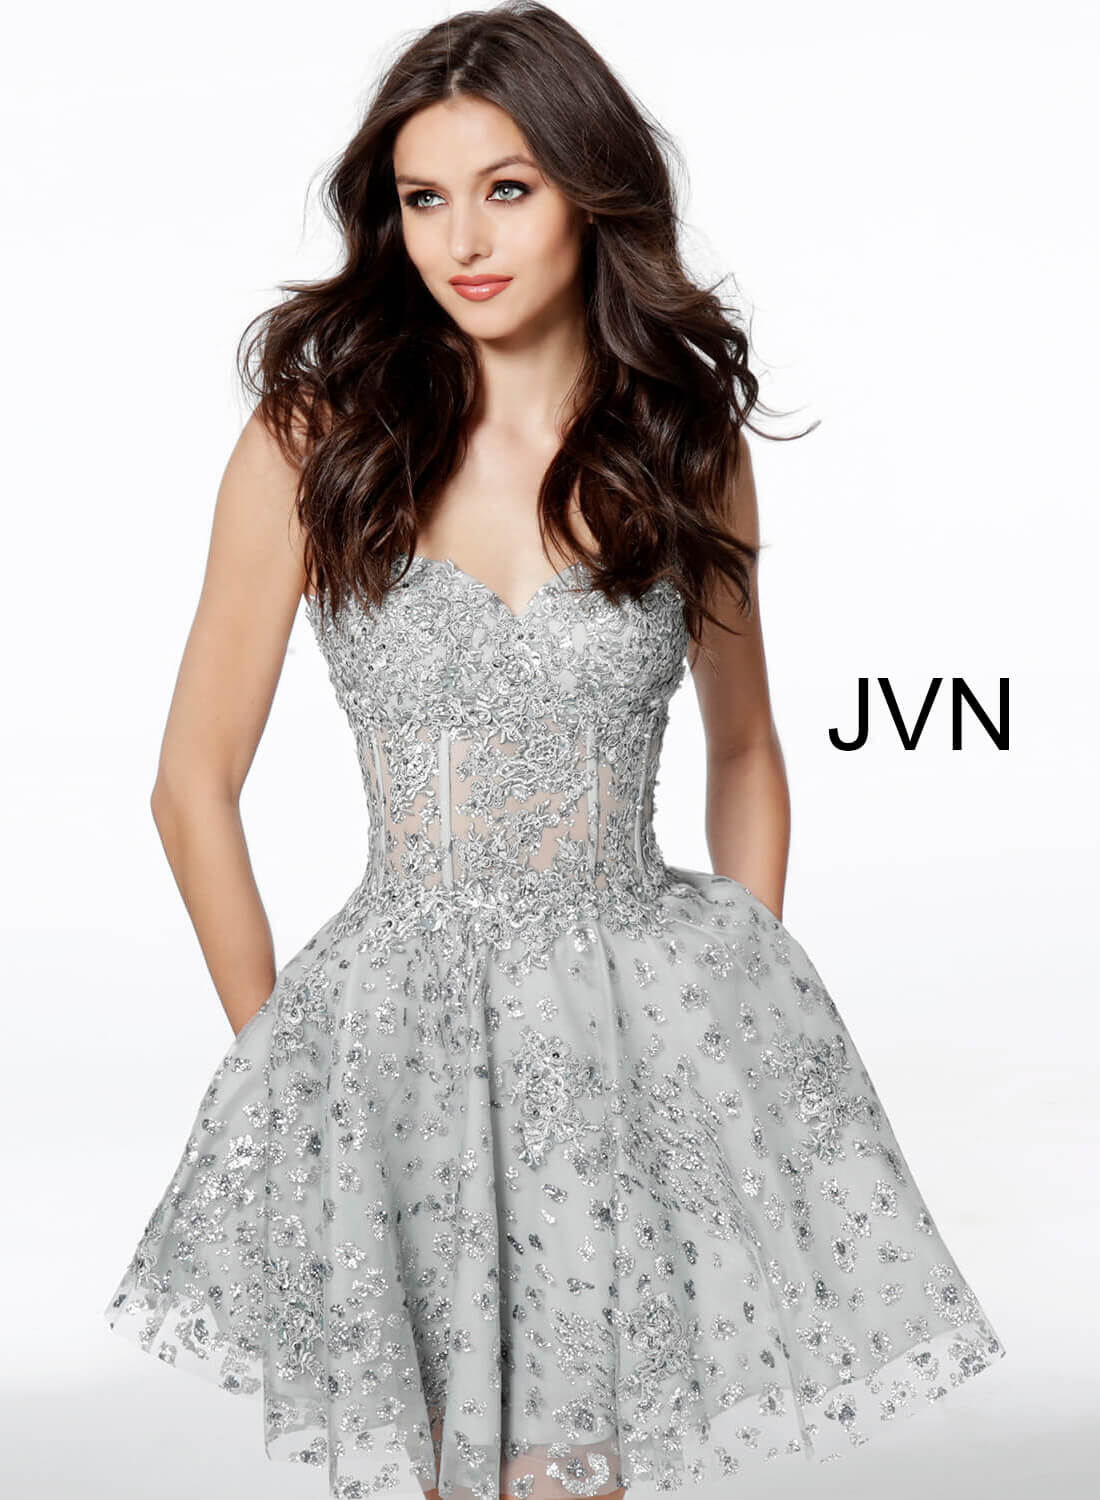 ac030b964e4 Silver short fit and flare embroidered boned bodice glitter dress.